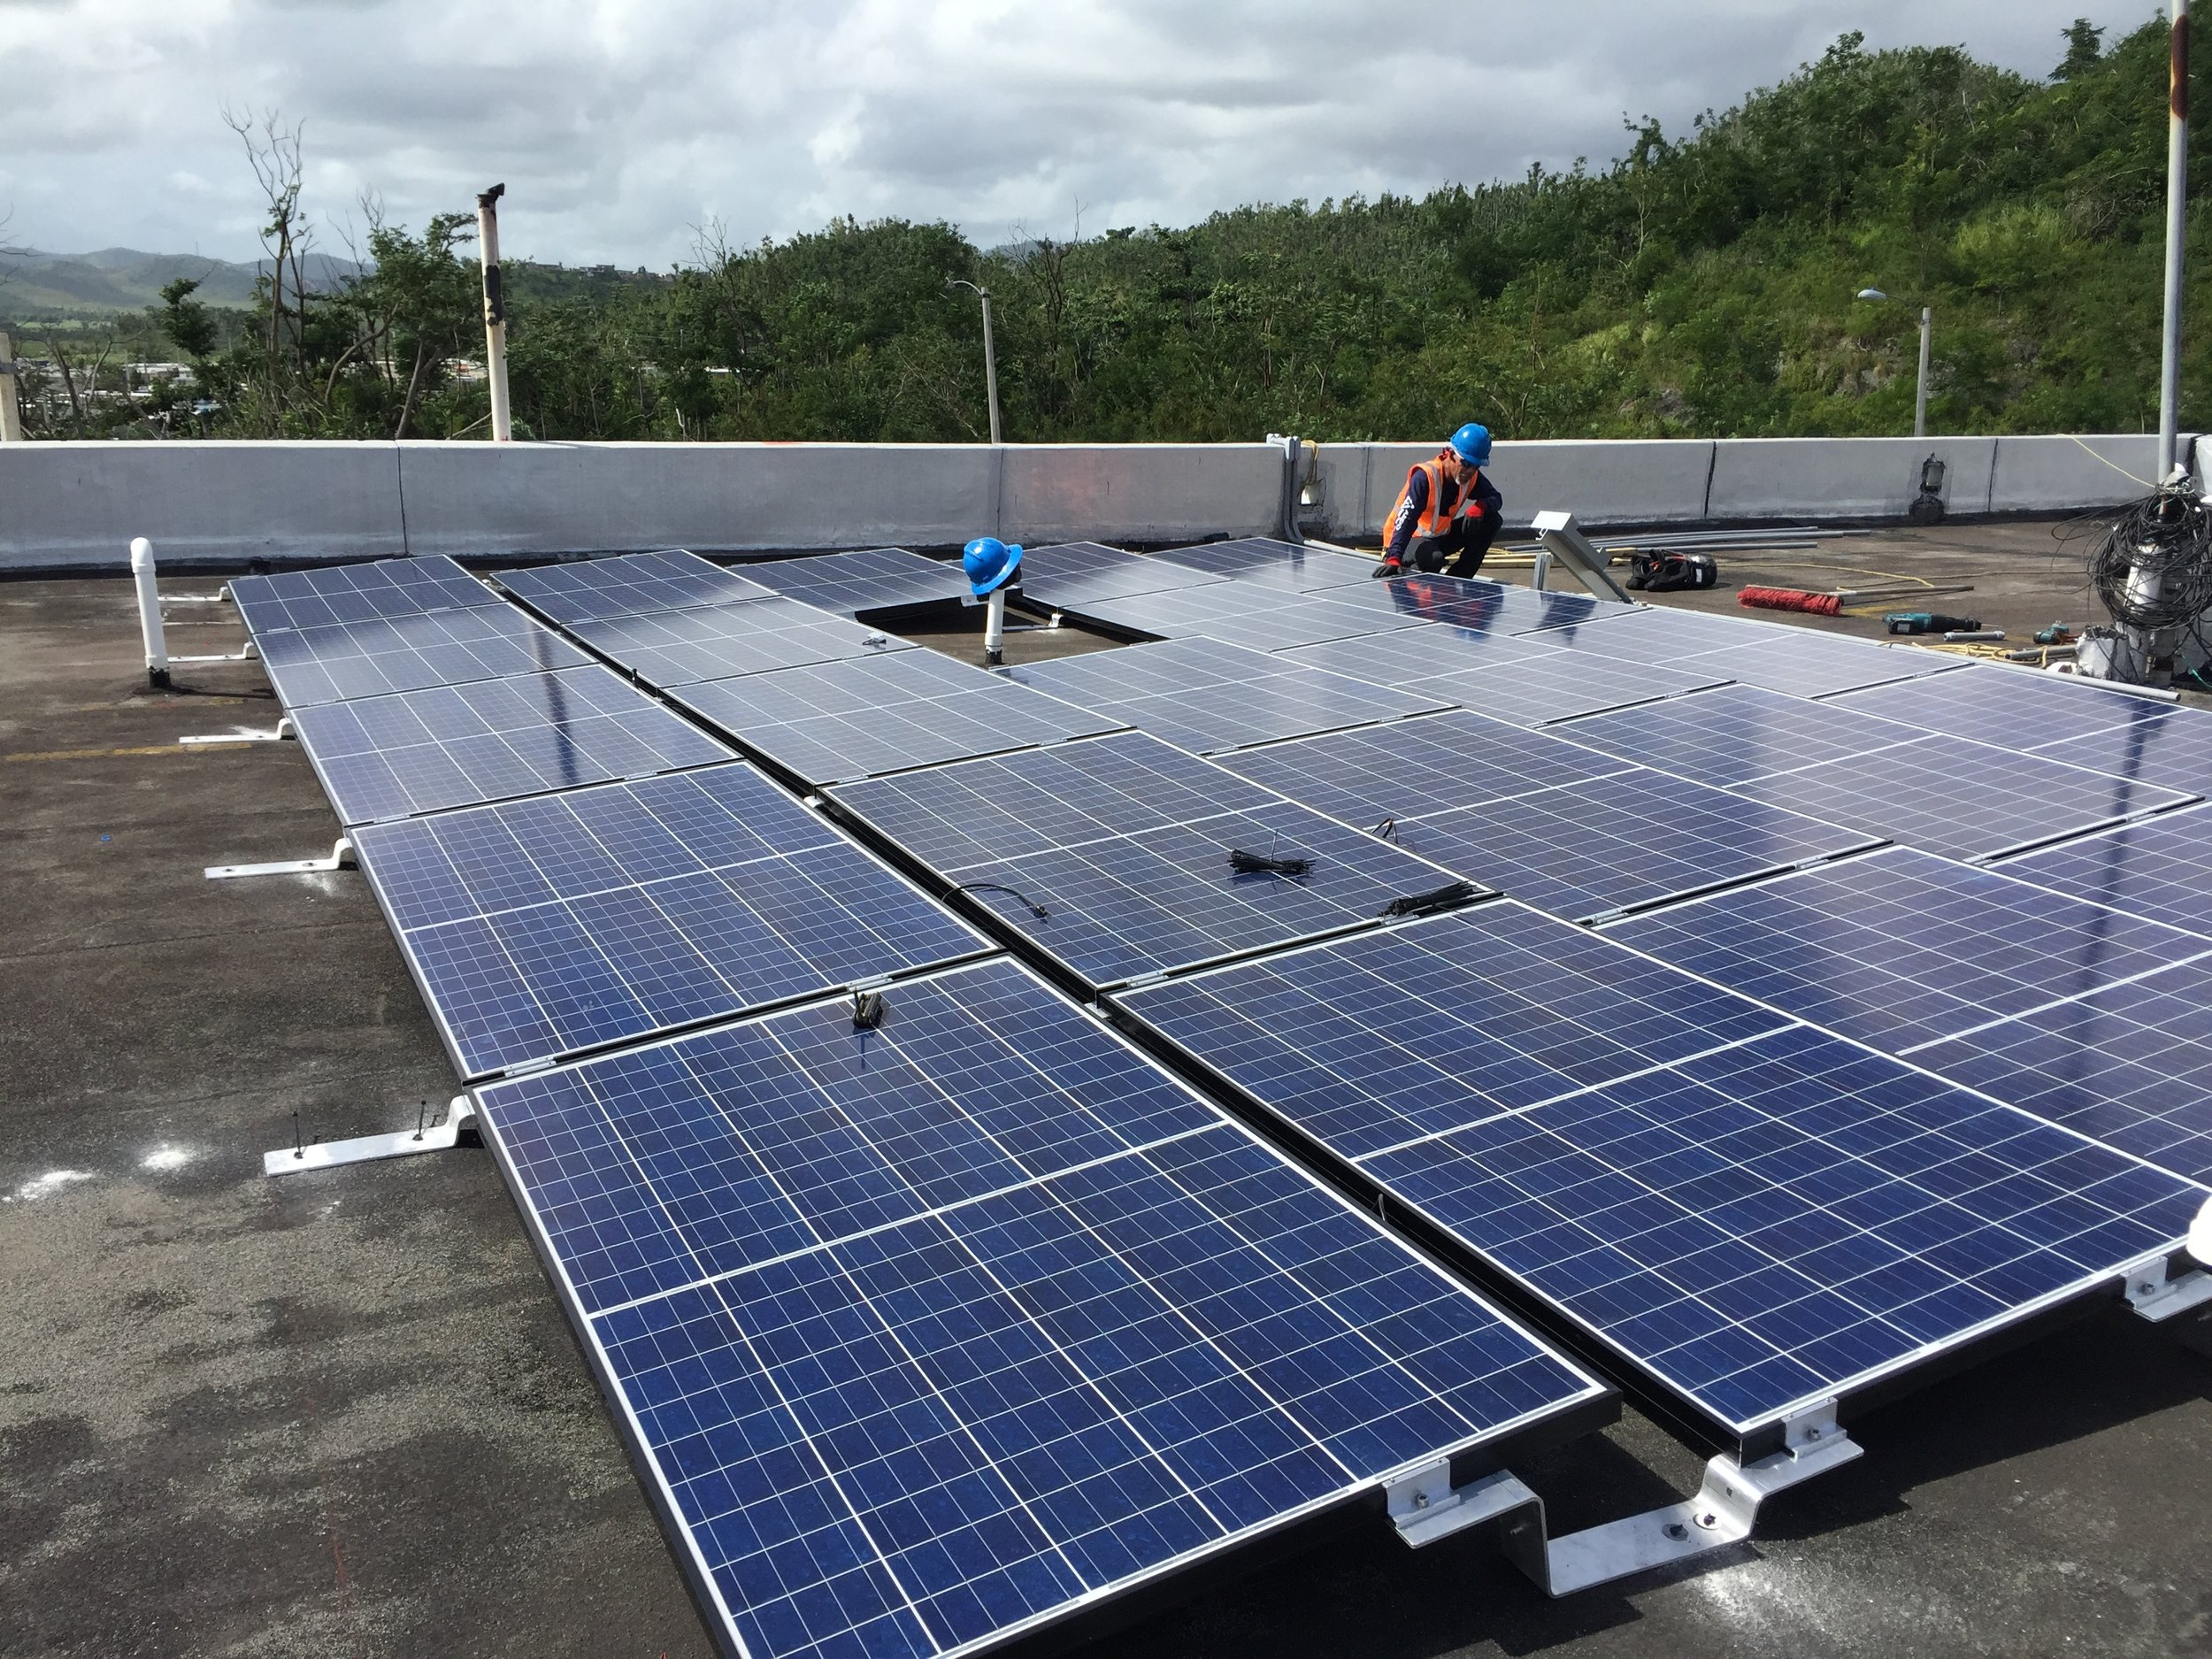 The solar array installed on the roof of the fire station in Naguabo, Puerto Rico.